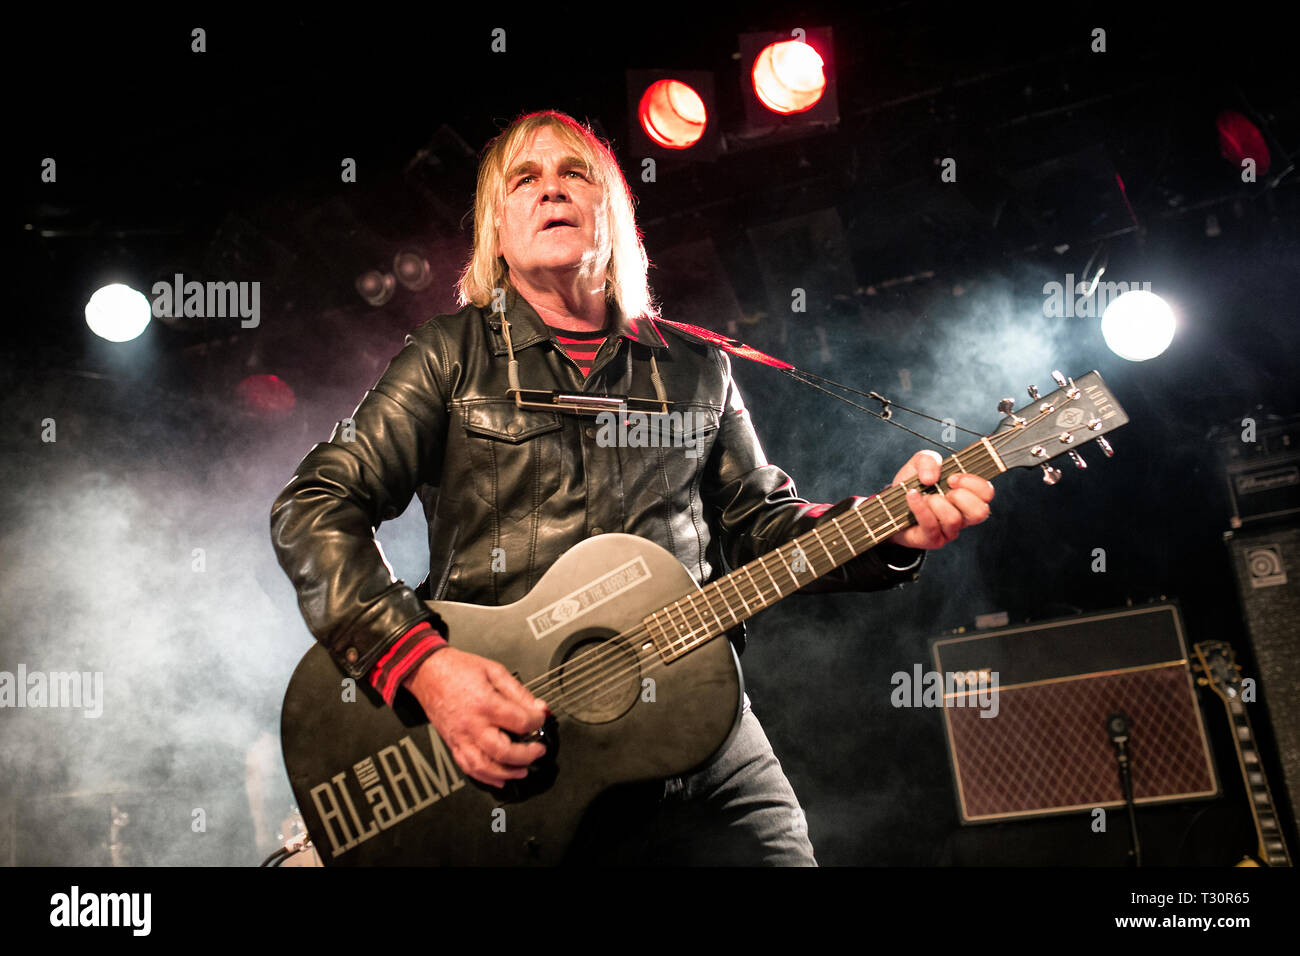 Norway, Oslo - April 4, 2019. The Welsh rock band The Alarm performs live concert at John Dee in Oslo. Here vocalist and guitarist Mike Peters is seen live on stage. (Photo credit: Gonzales Photo - Terje Dokken). Credit: Gonzales Photo/Alamy Live News - Stock Image